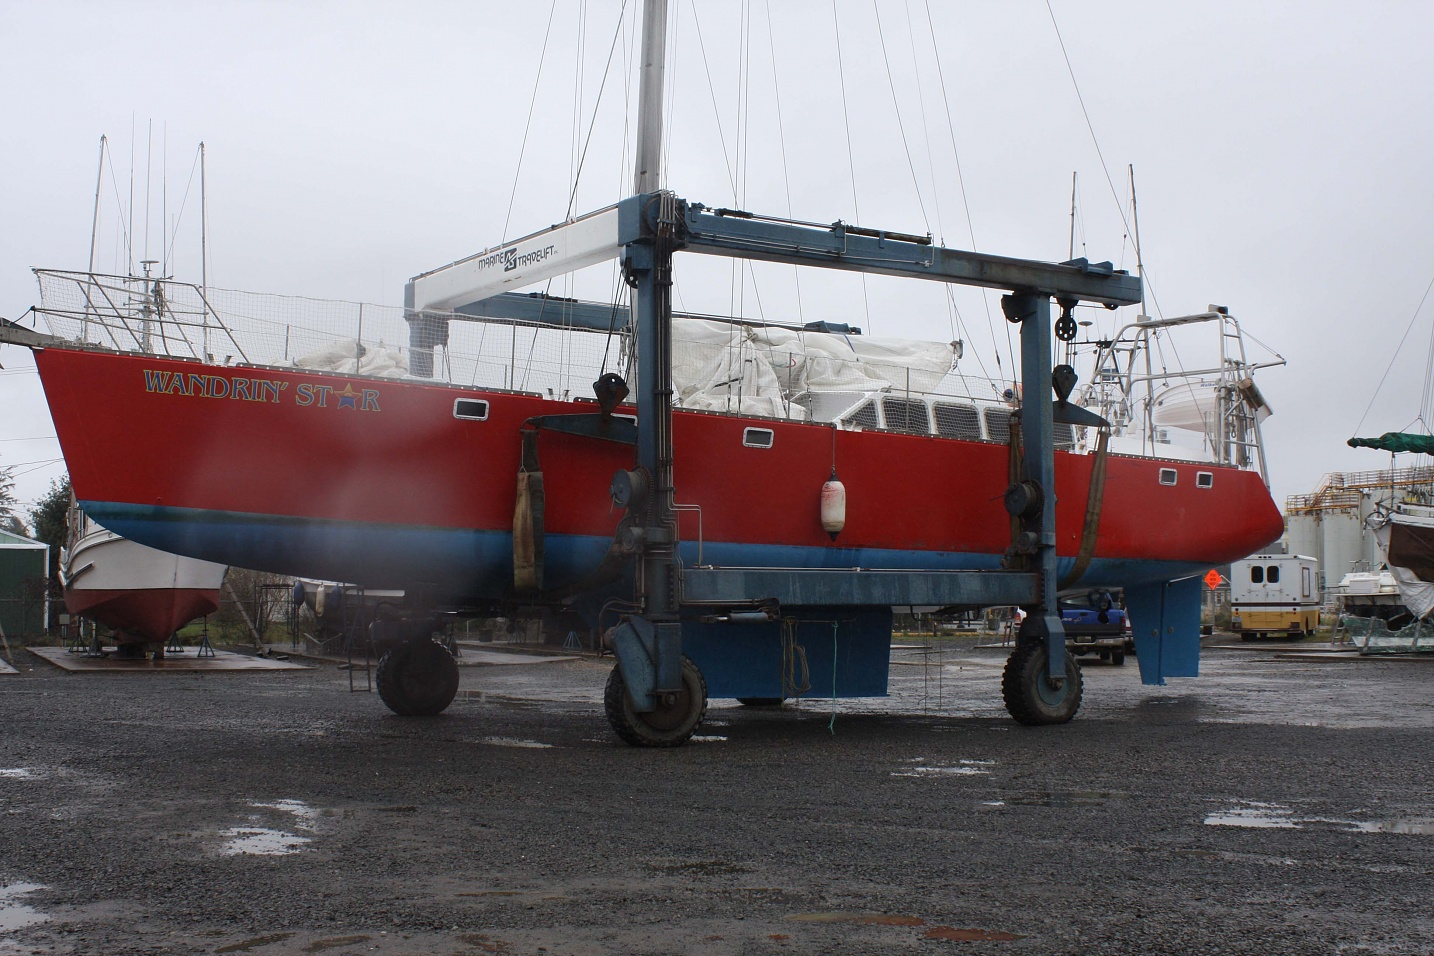 Click image for larger version  Name:Ilwaco Haul on lift 1.jpg Views:119 Size:477.9 KB ID:7789